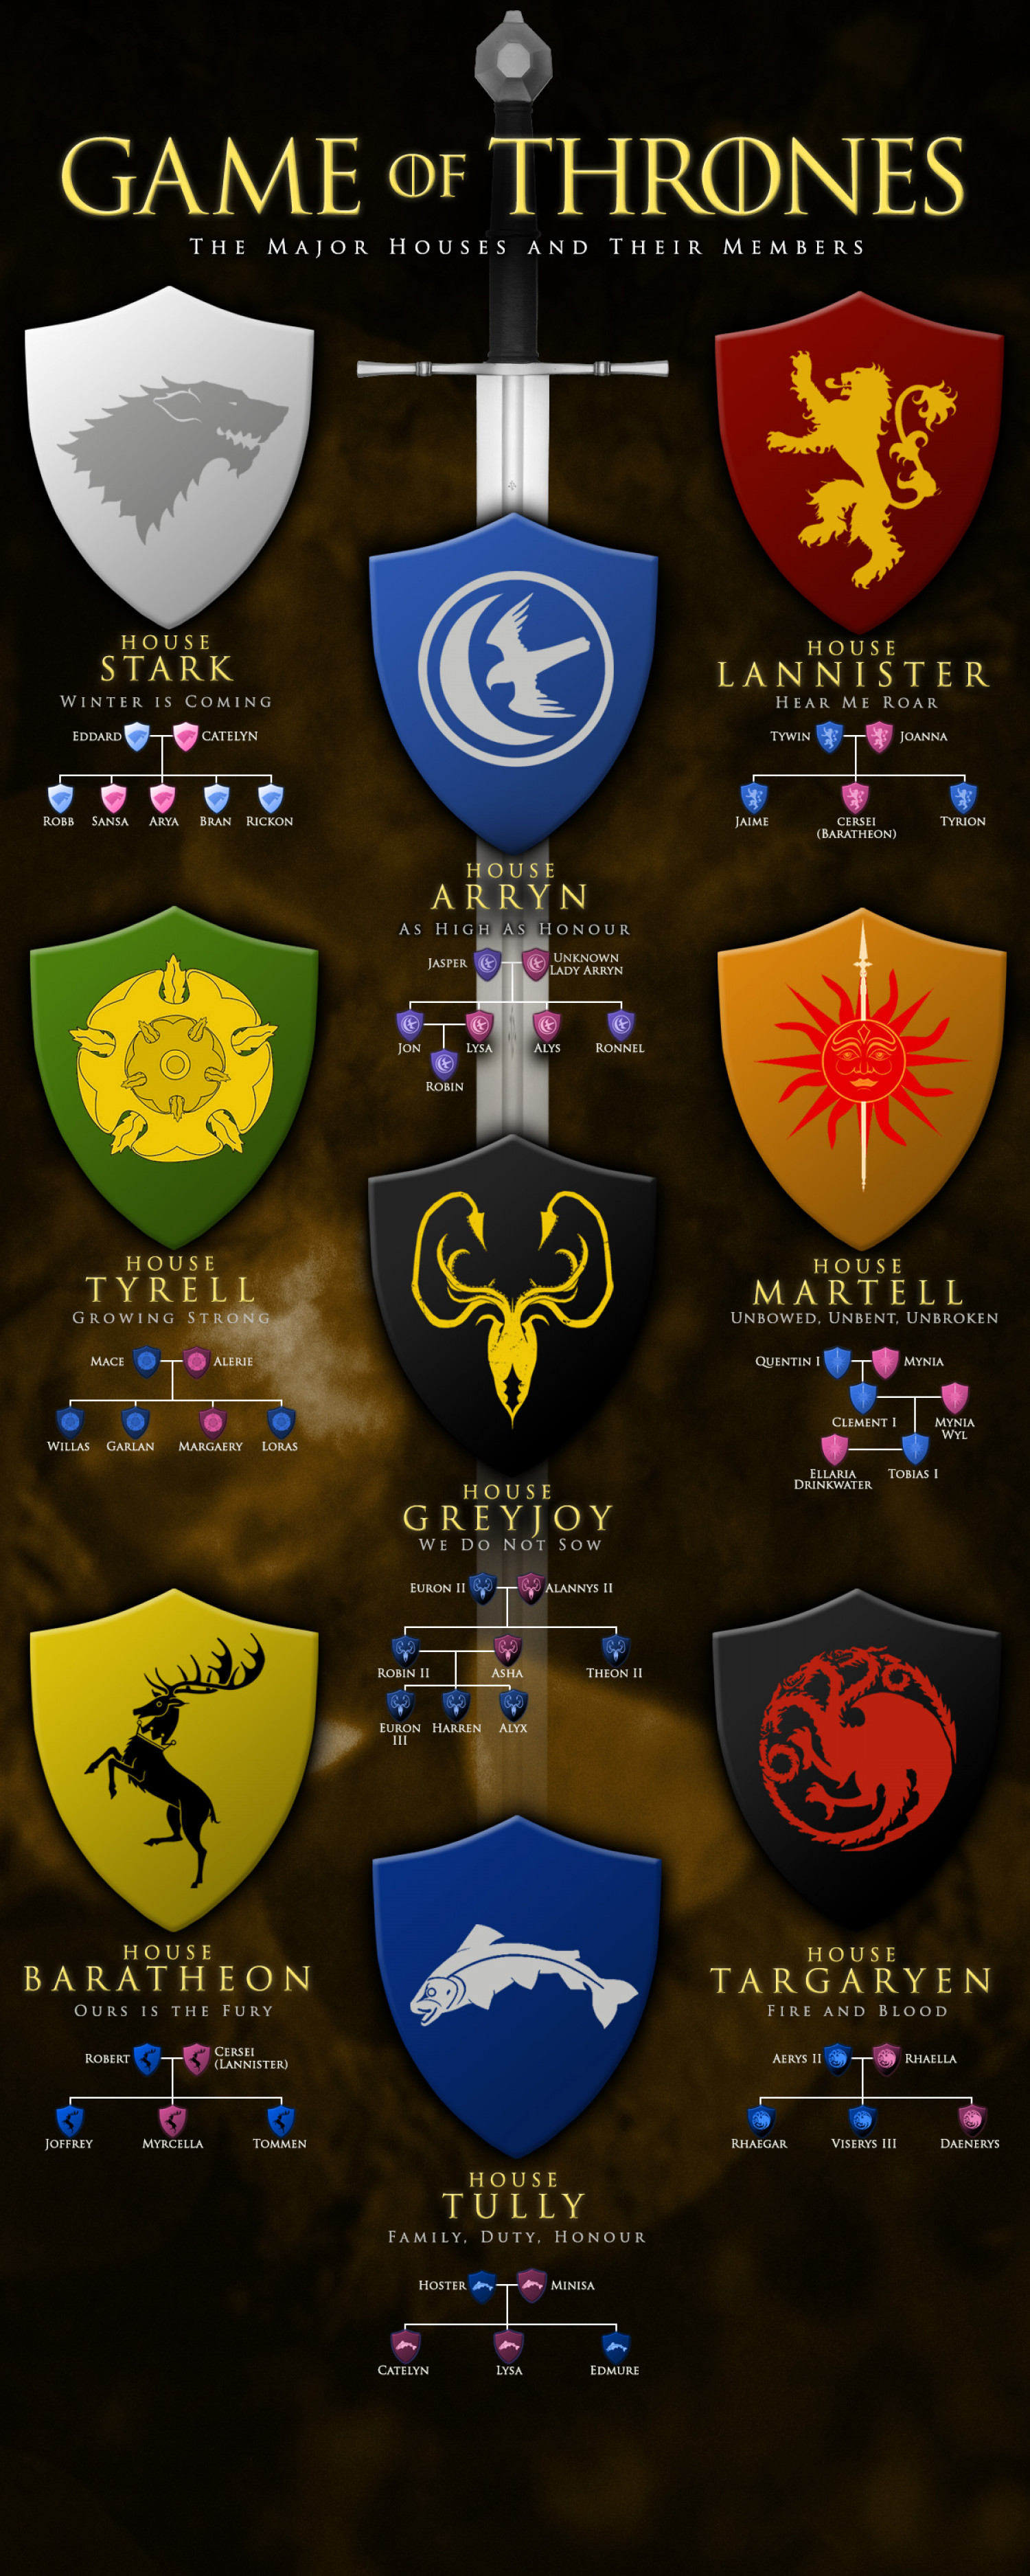 Game of thrones structure Infographic